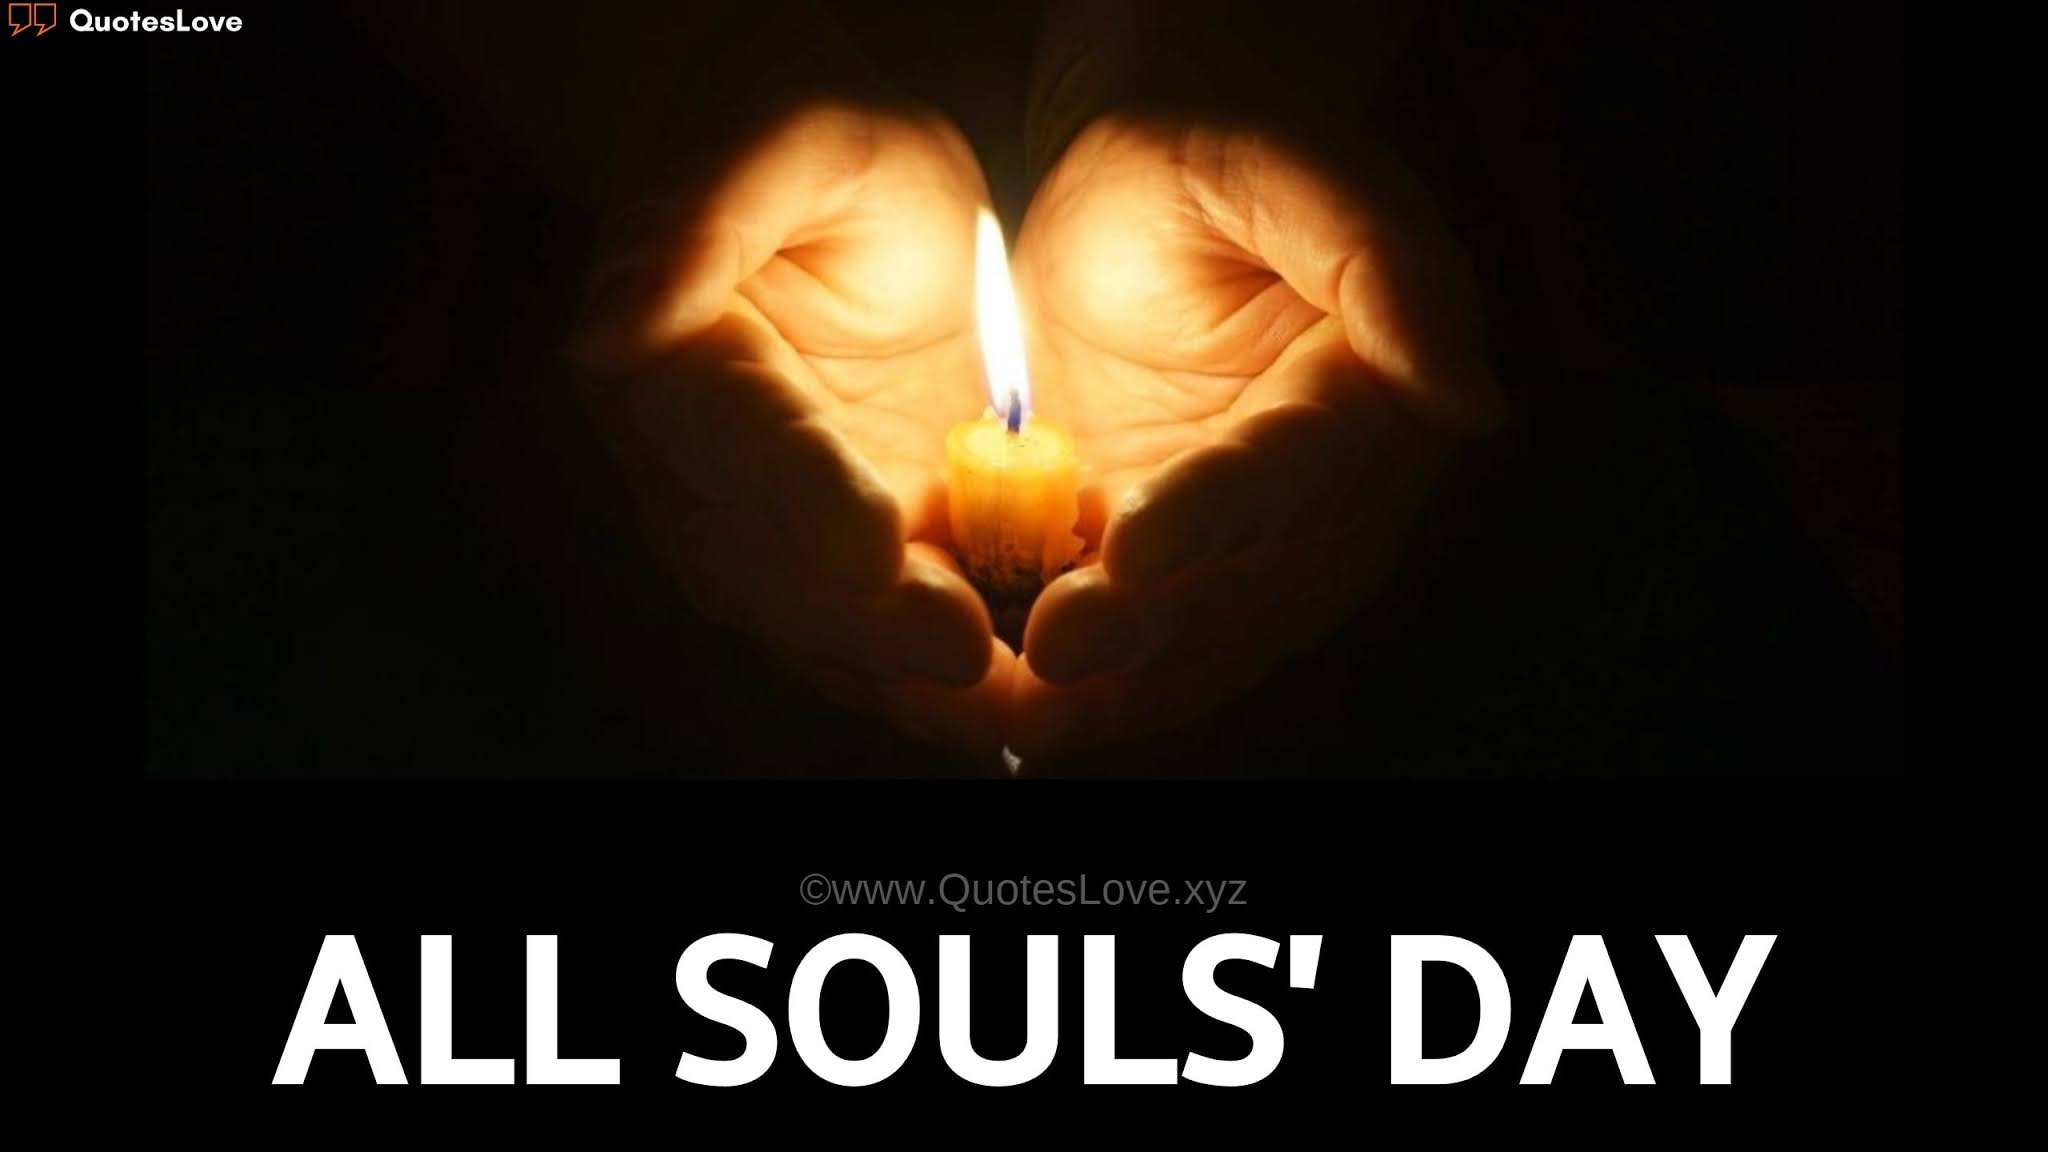 All Souls' Day Quotes, Sayings, Wishes, Greetings, Messages, Images, Pictures, Poster, Photos